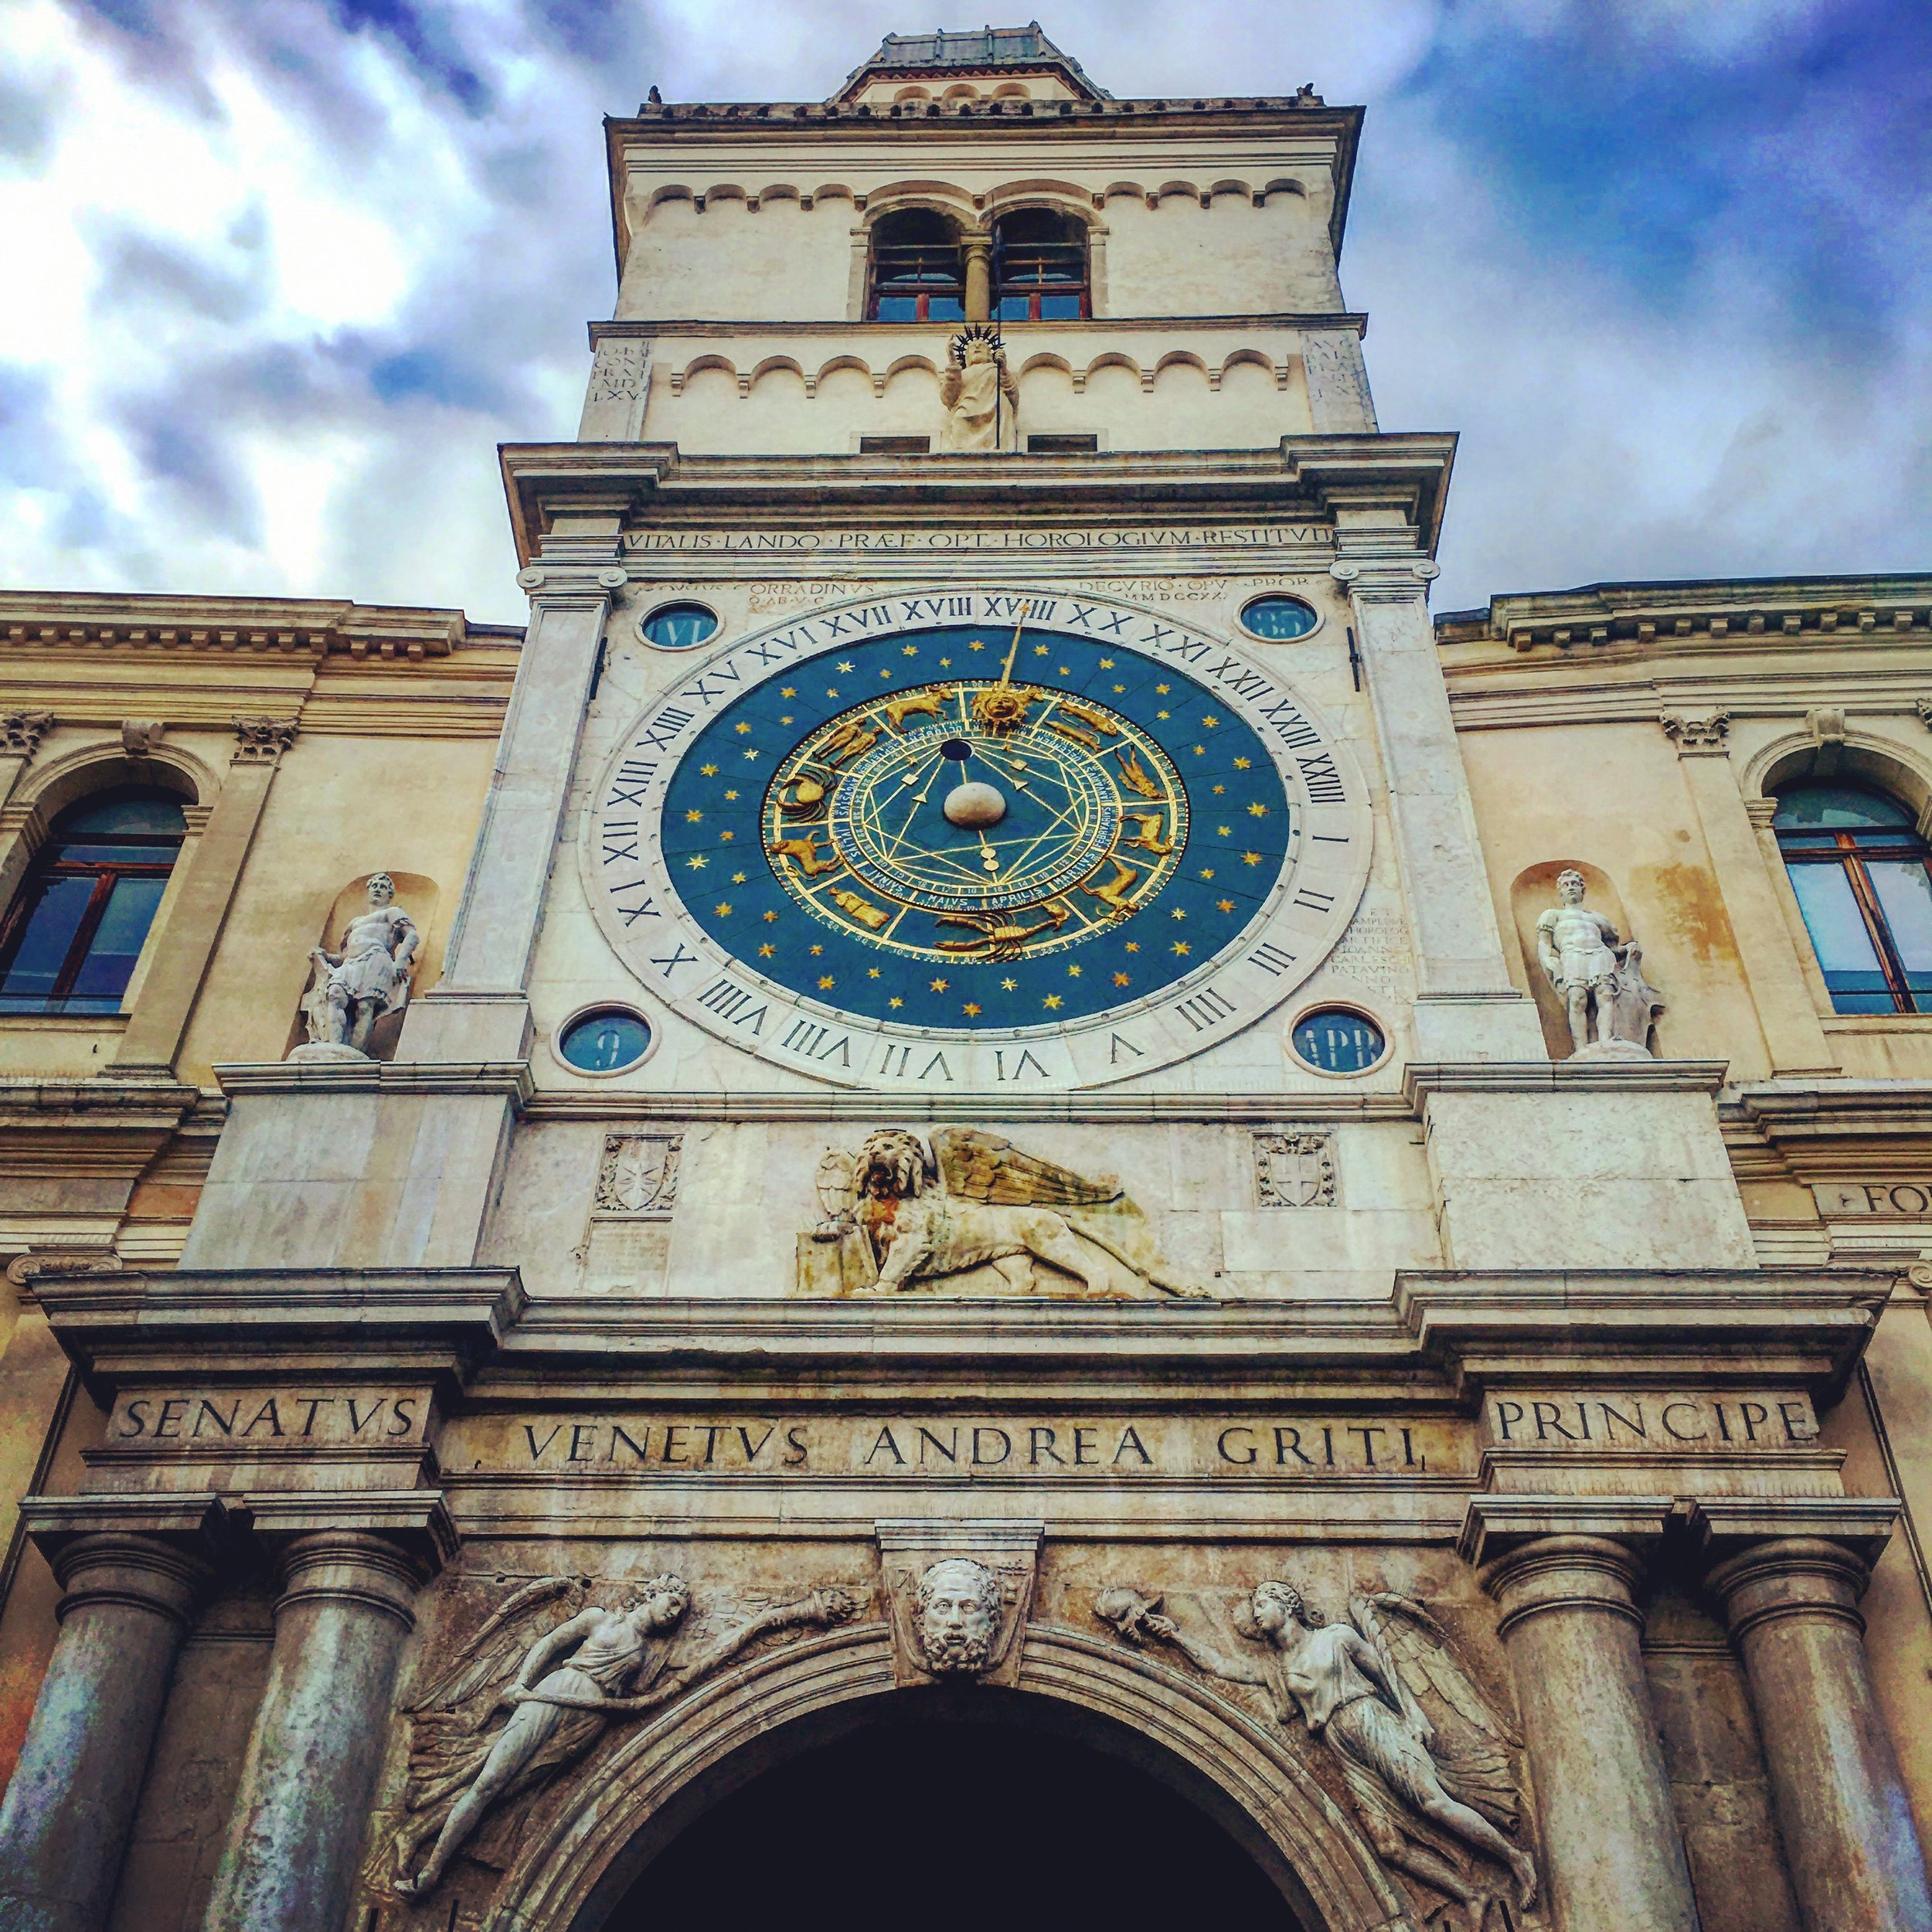 Jacopo de'Dondi - The creator of the world's first clock